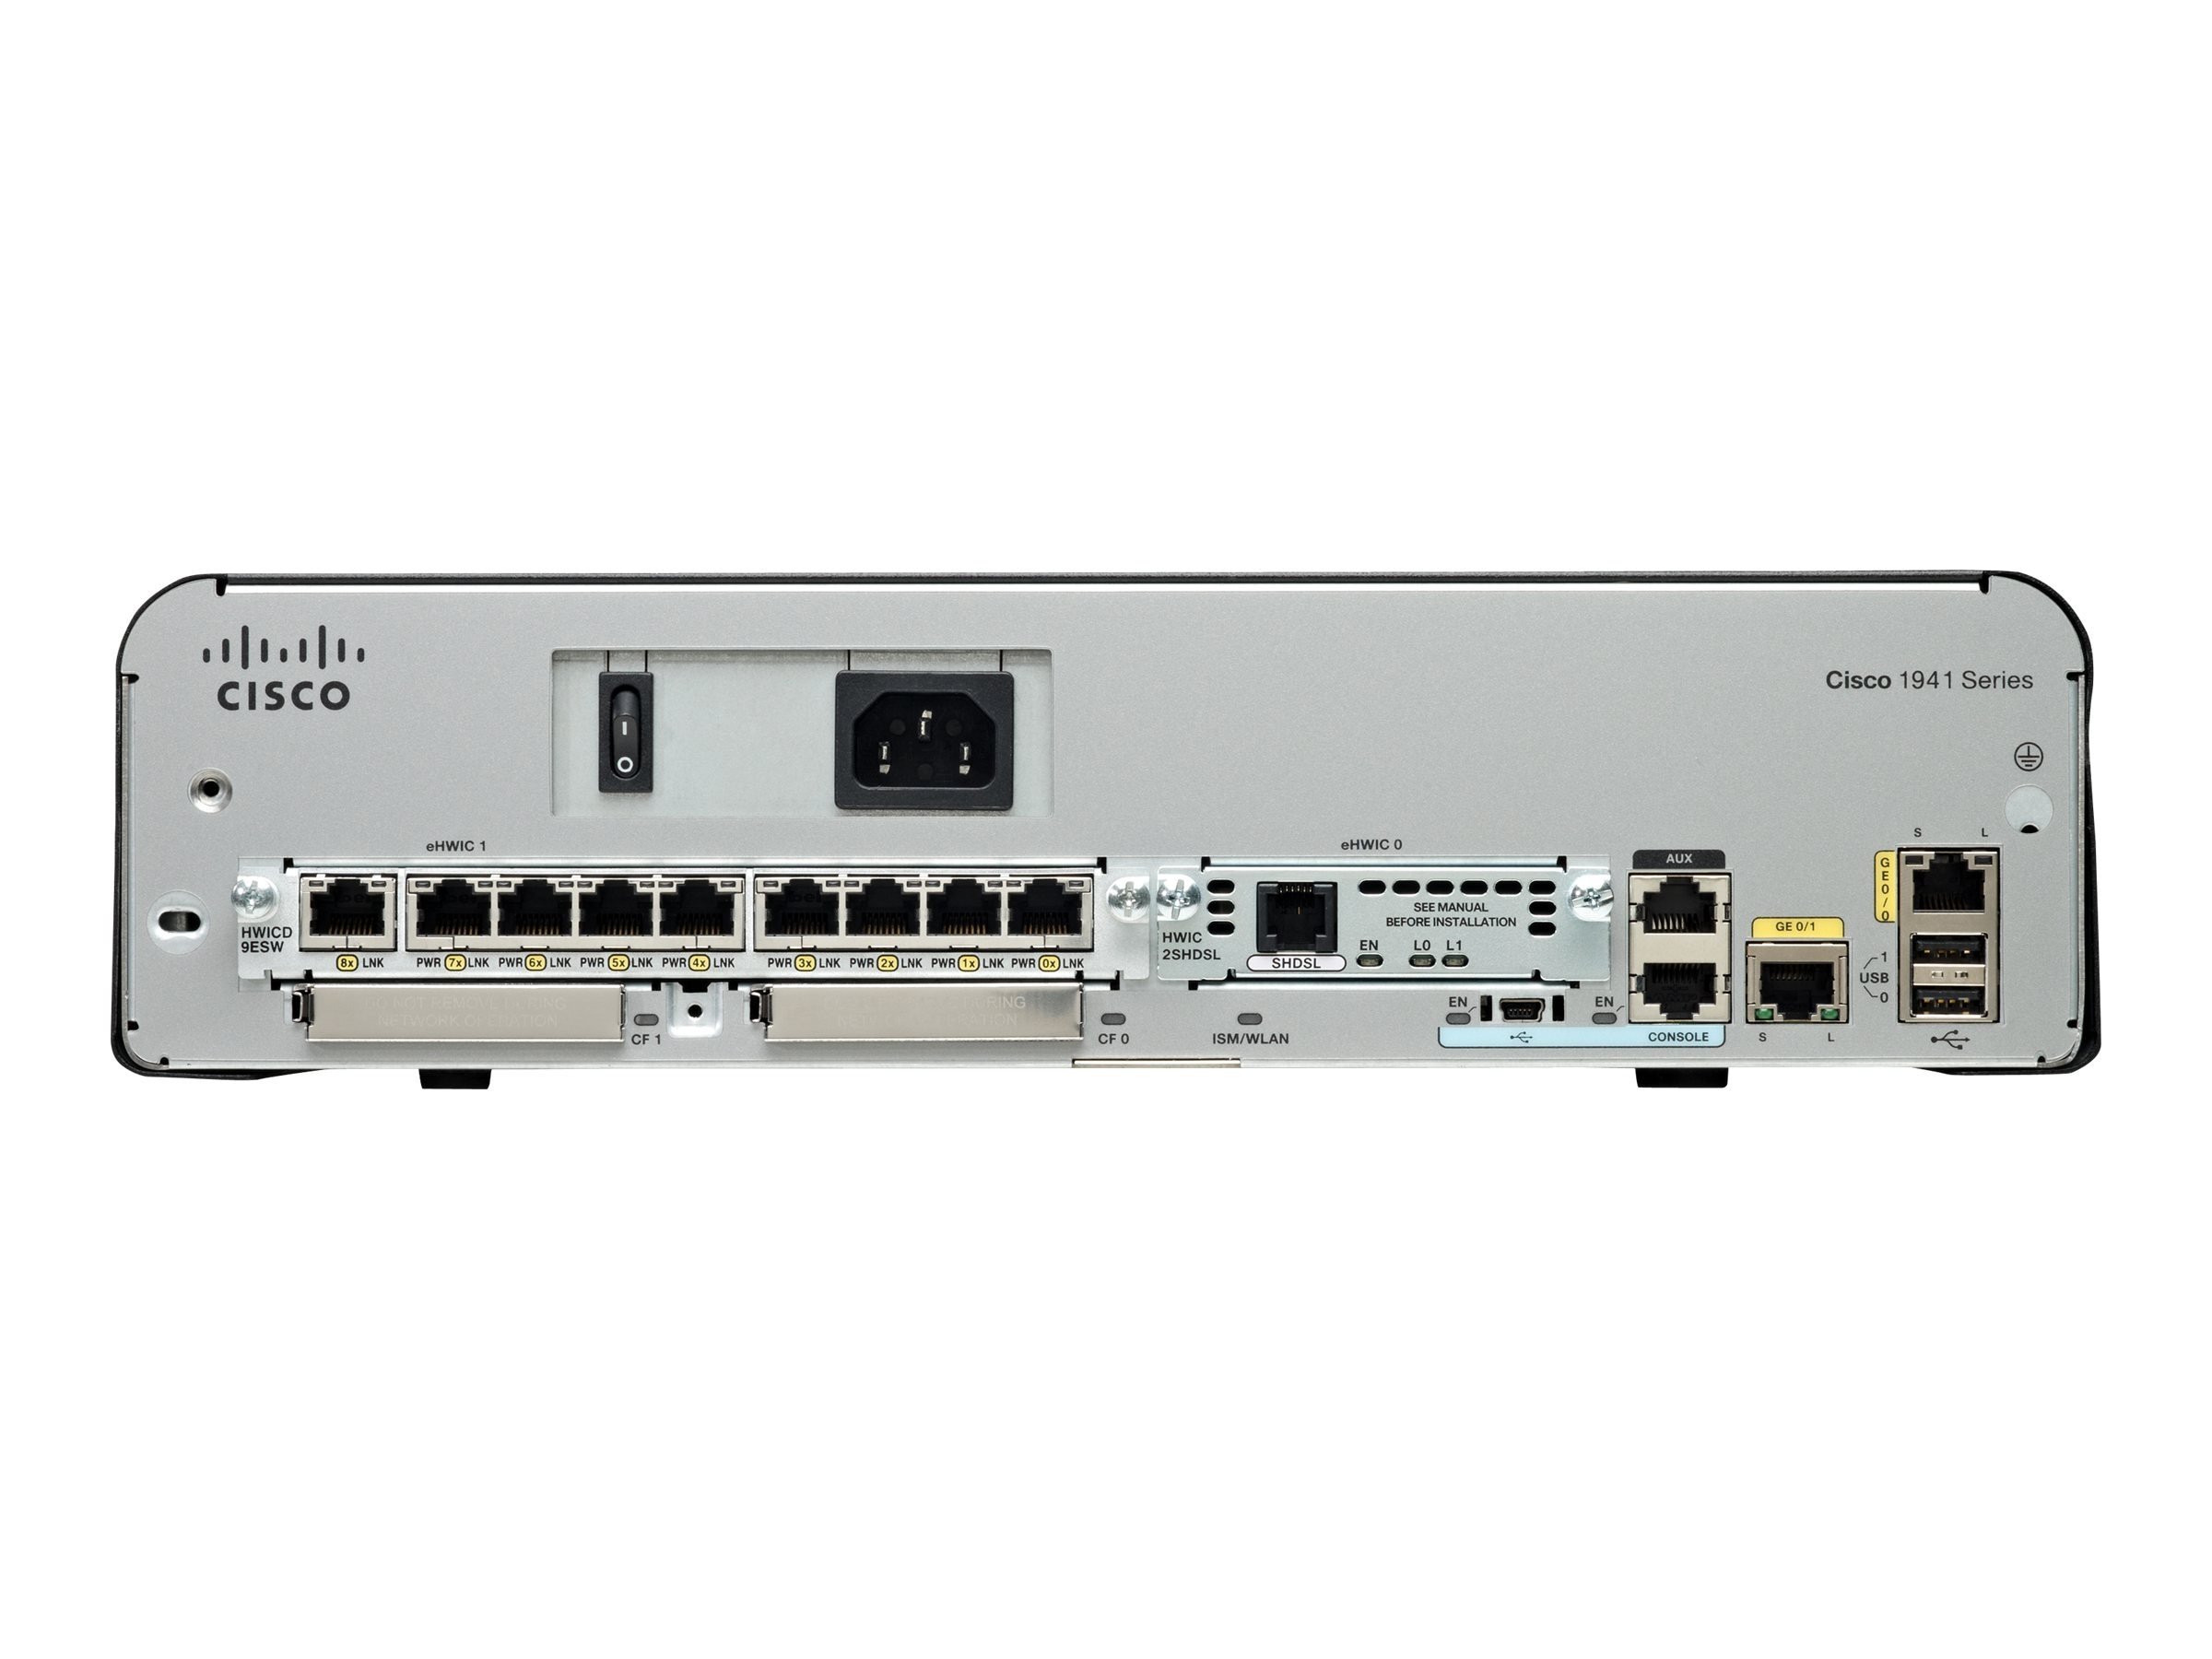 Cisco CISCO1941/K9 Image 4